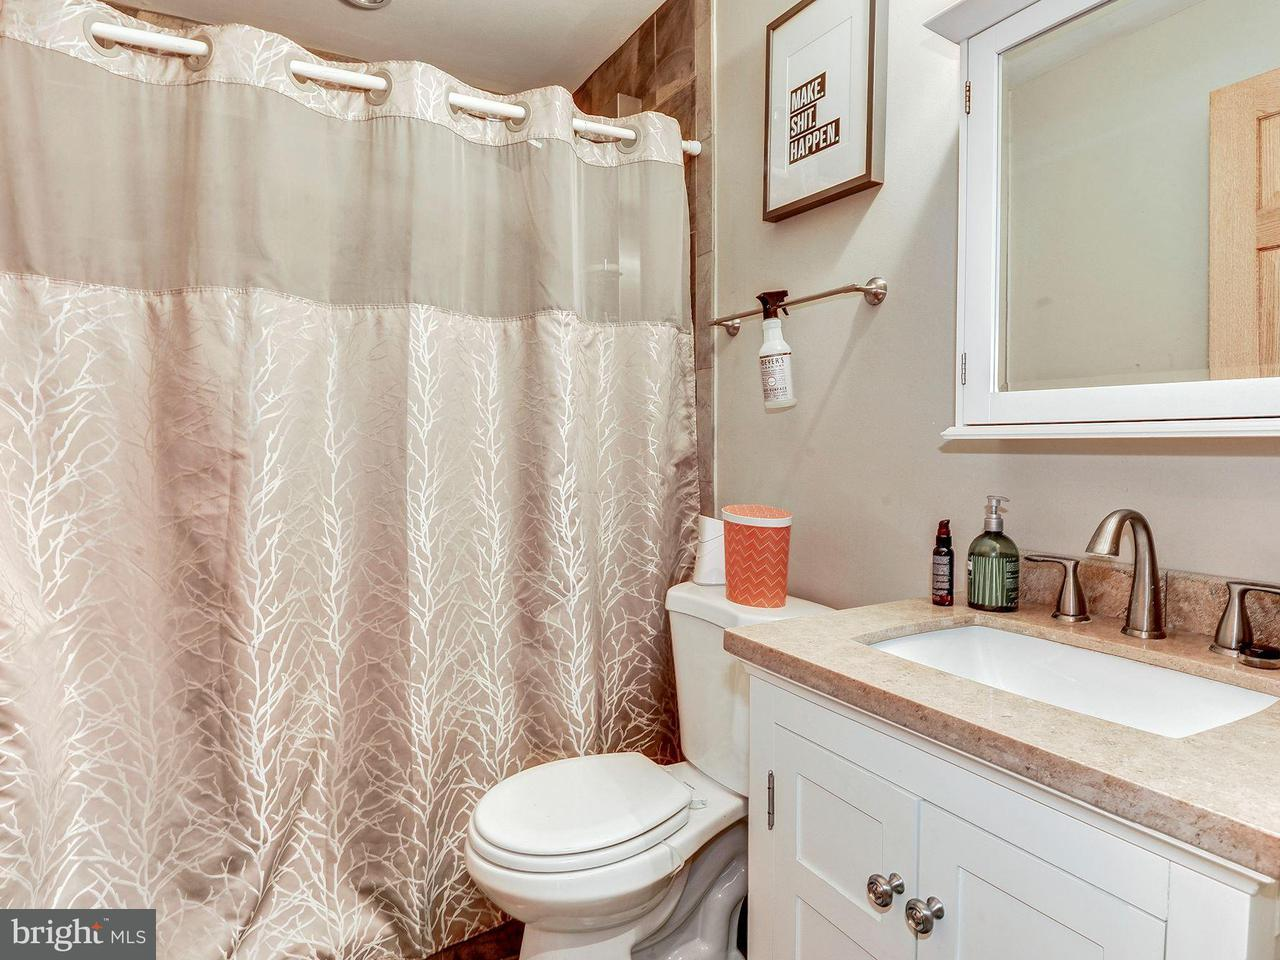 Additional photo for property listing at 1933 Park Rd Nw 1933 Park Rd Nw Washington, District Of Columbia 20010 Vereinigte Staaten